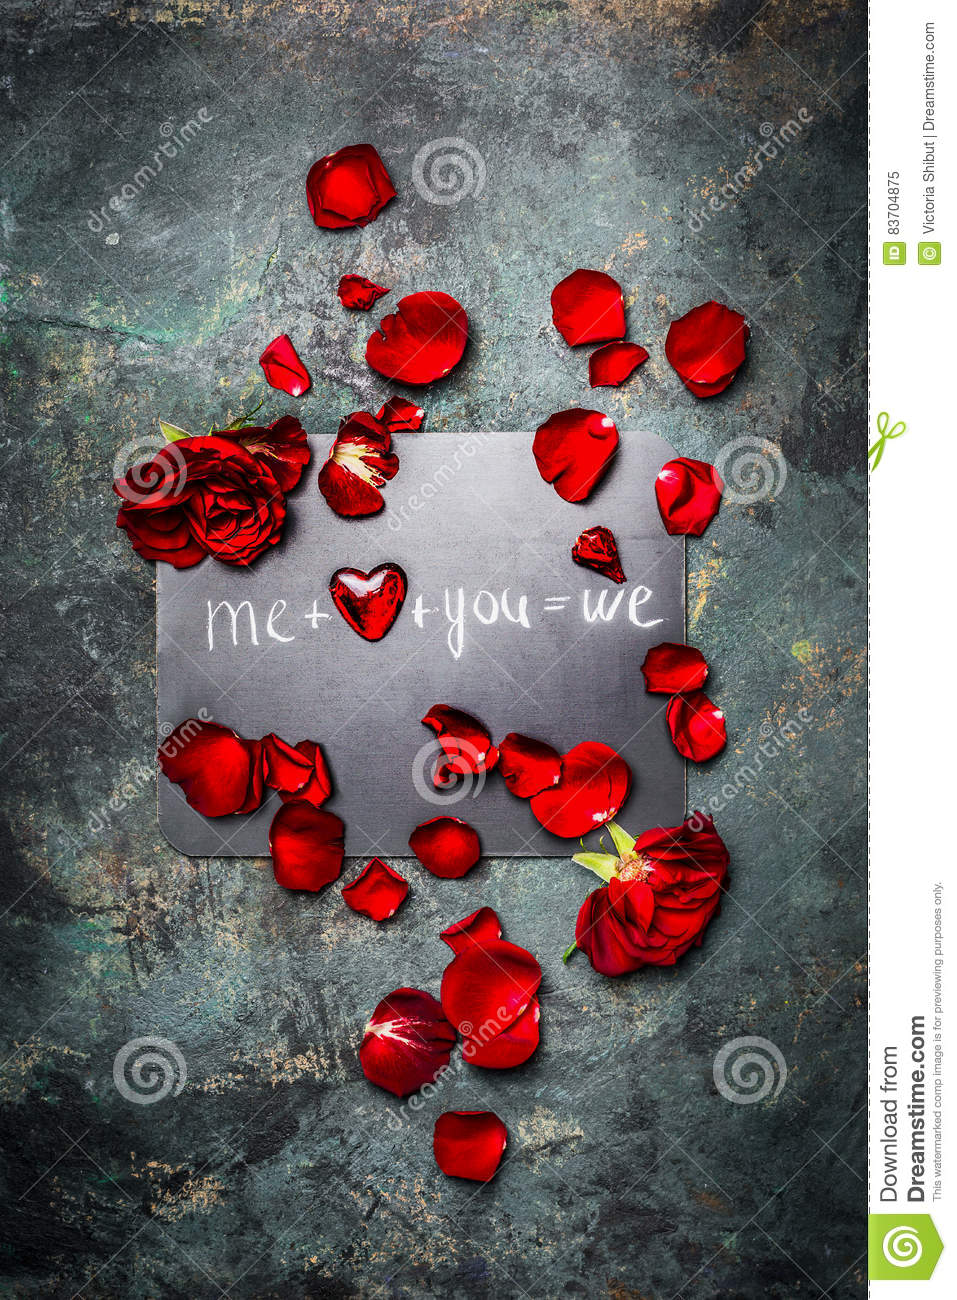 Romantic Valentines Day Card With Red Roses, Petal,heart And Text , Top View Stock Photo